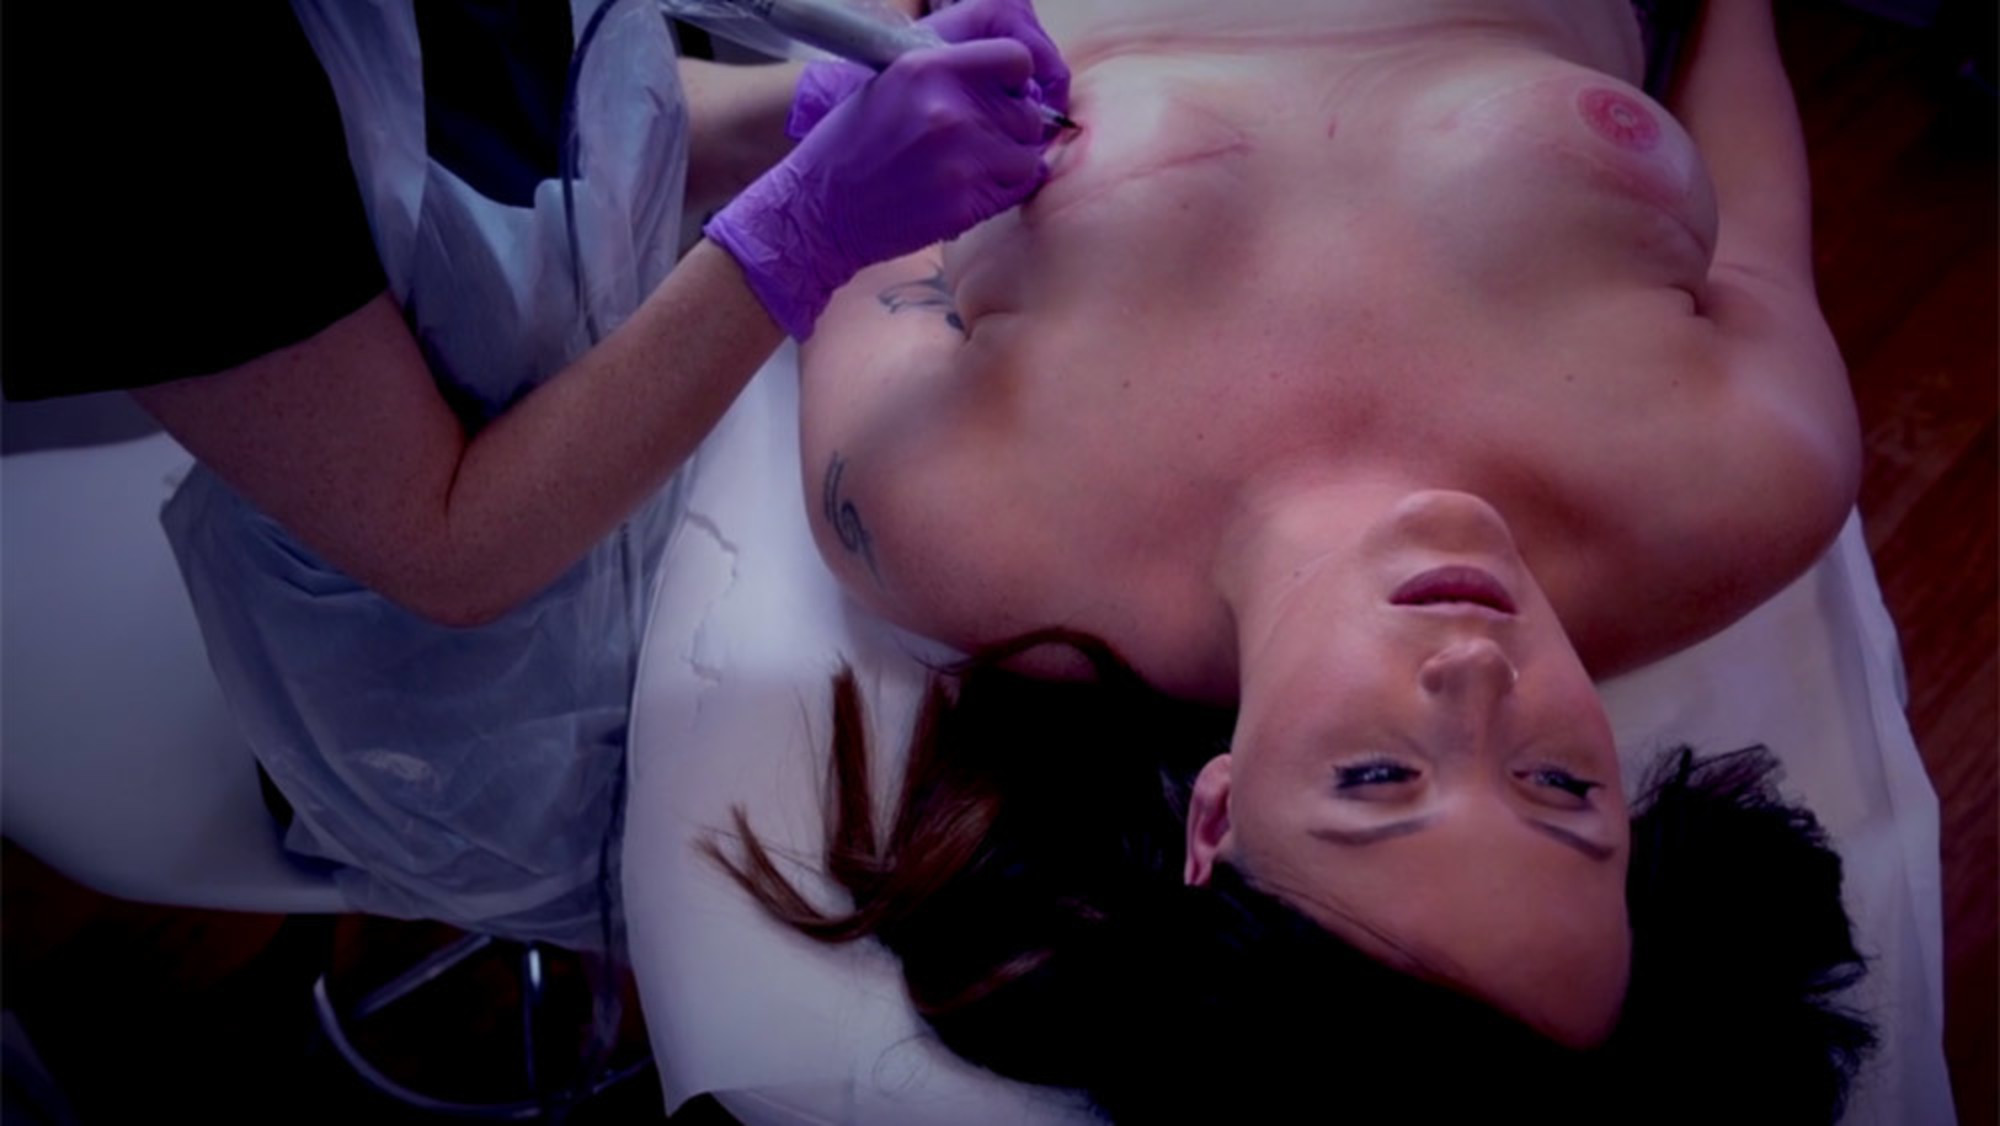 https://aeon.co/videos/after-katies-double-mastectomy-claire-can-help-with-3d-nipple-tattoos